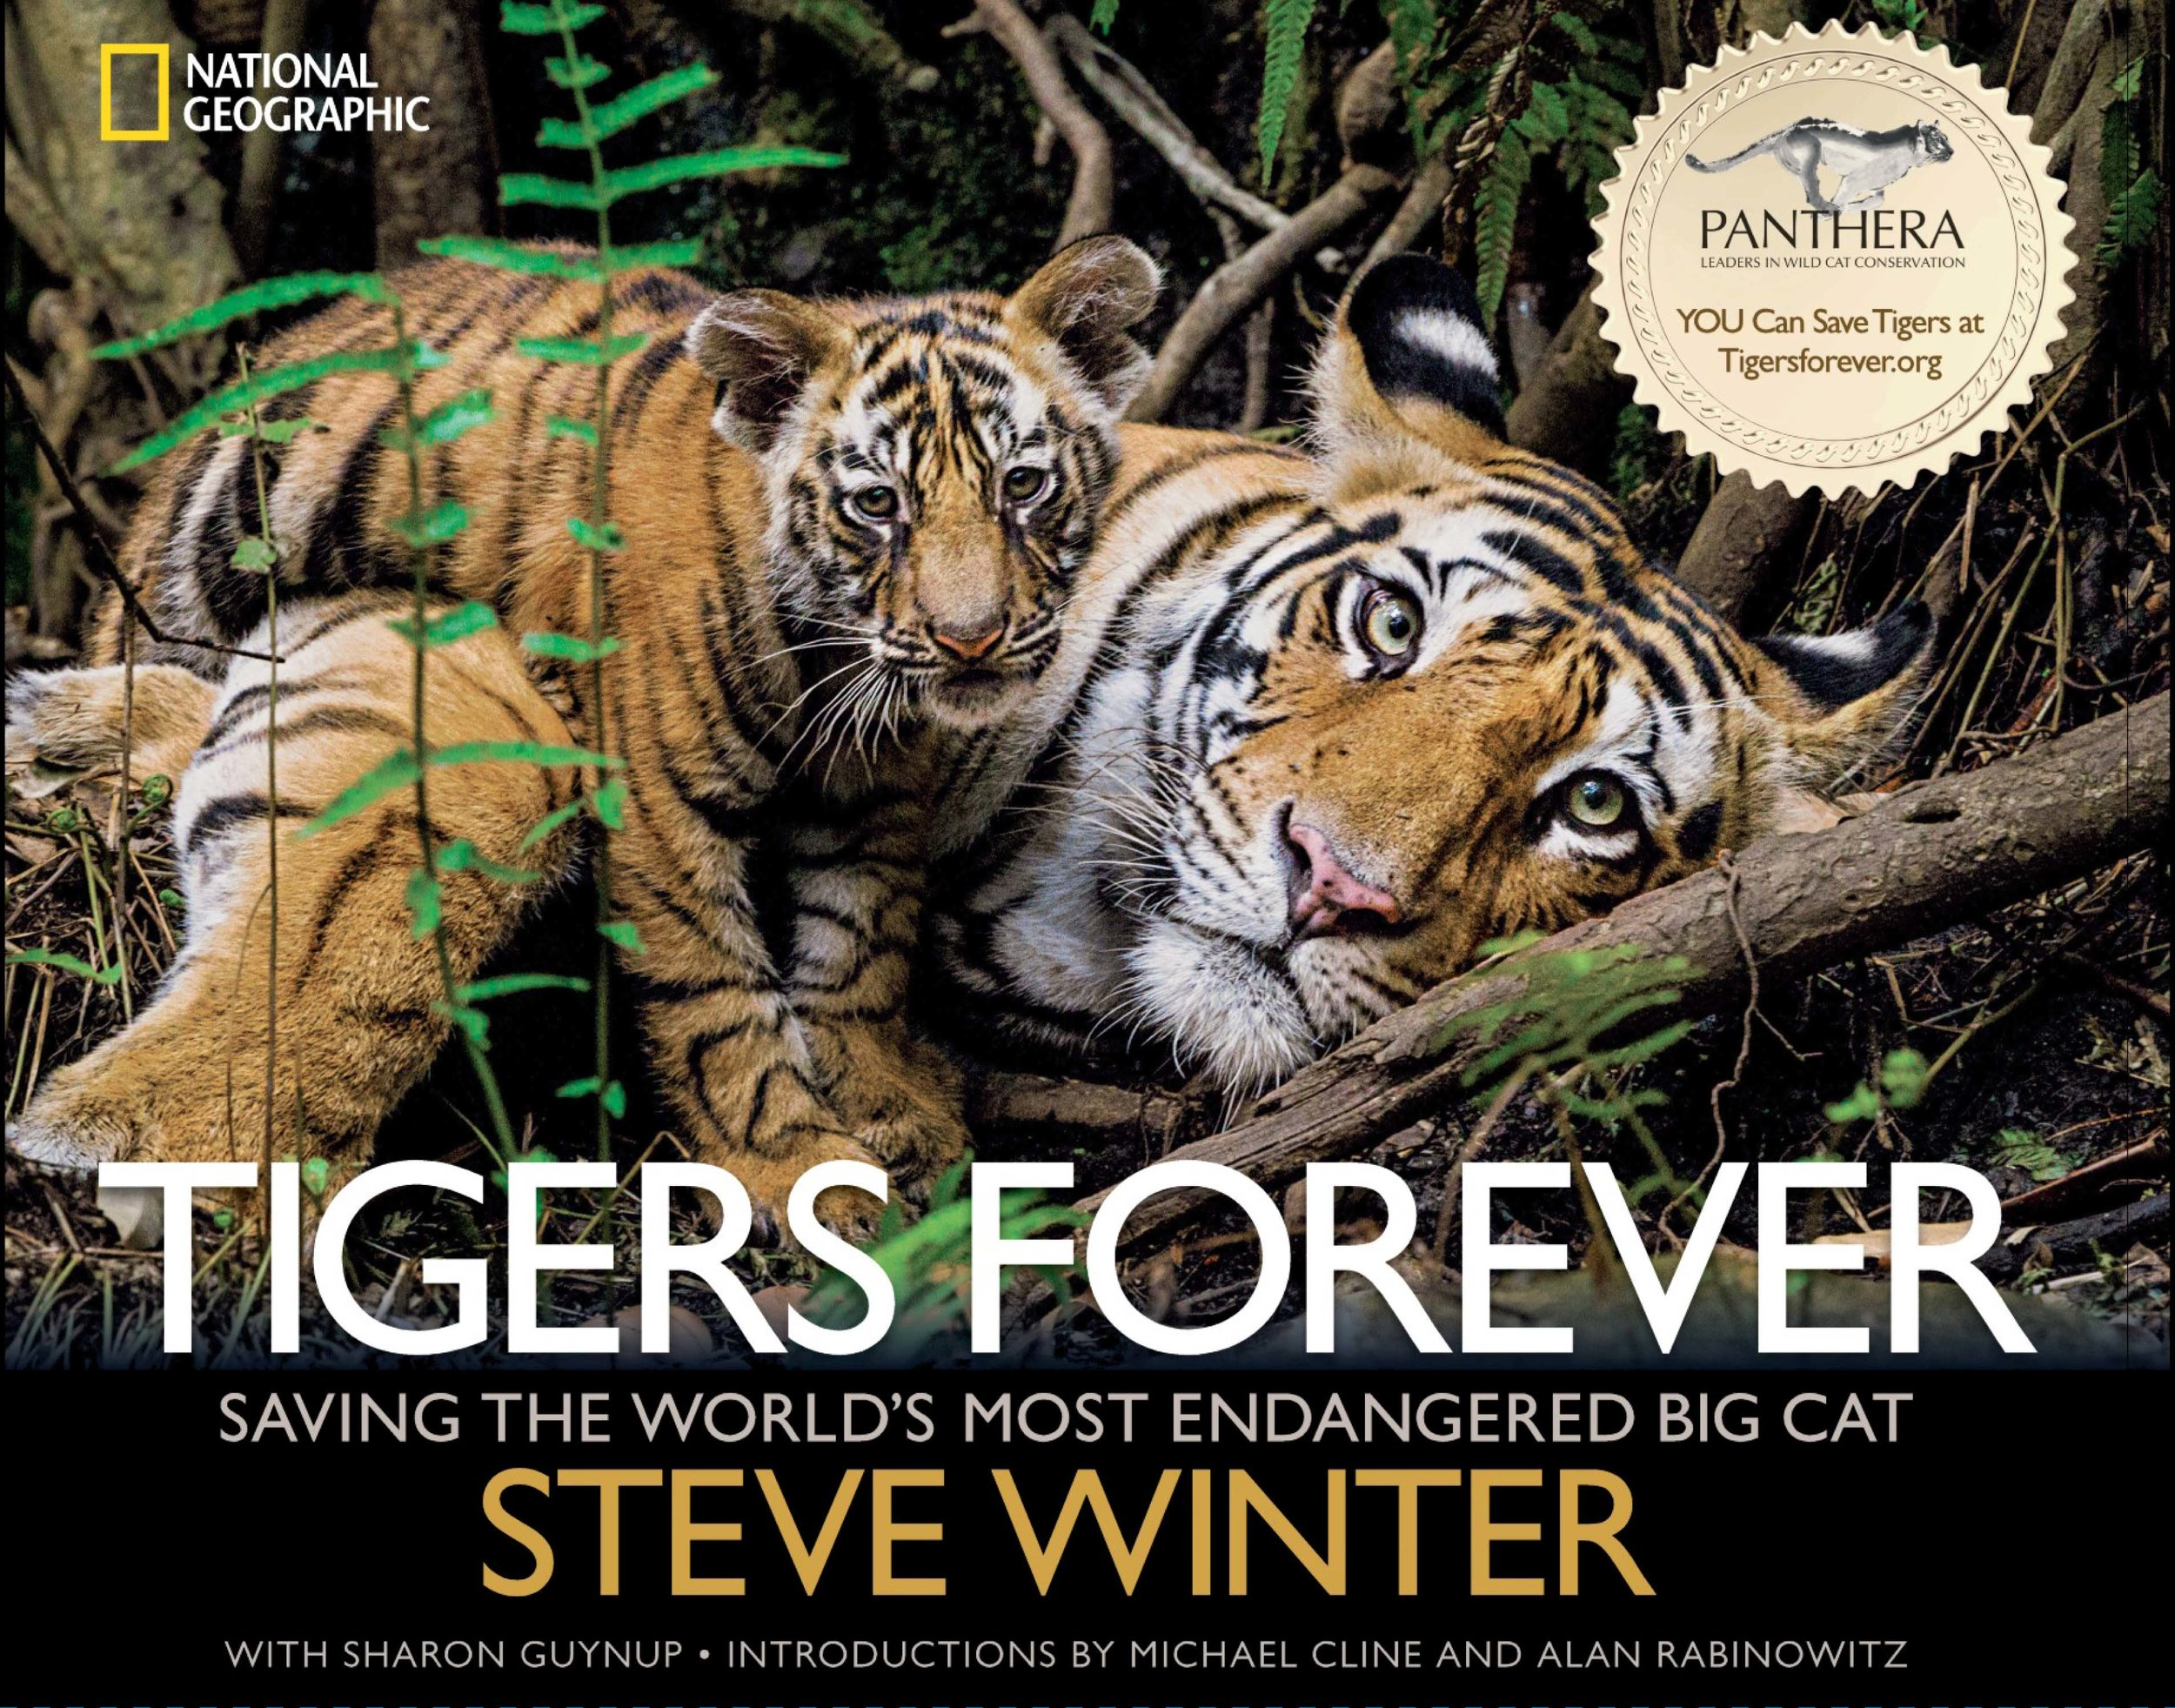 S.Winter Tigers-Forever book cover.jpg